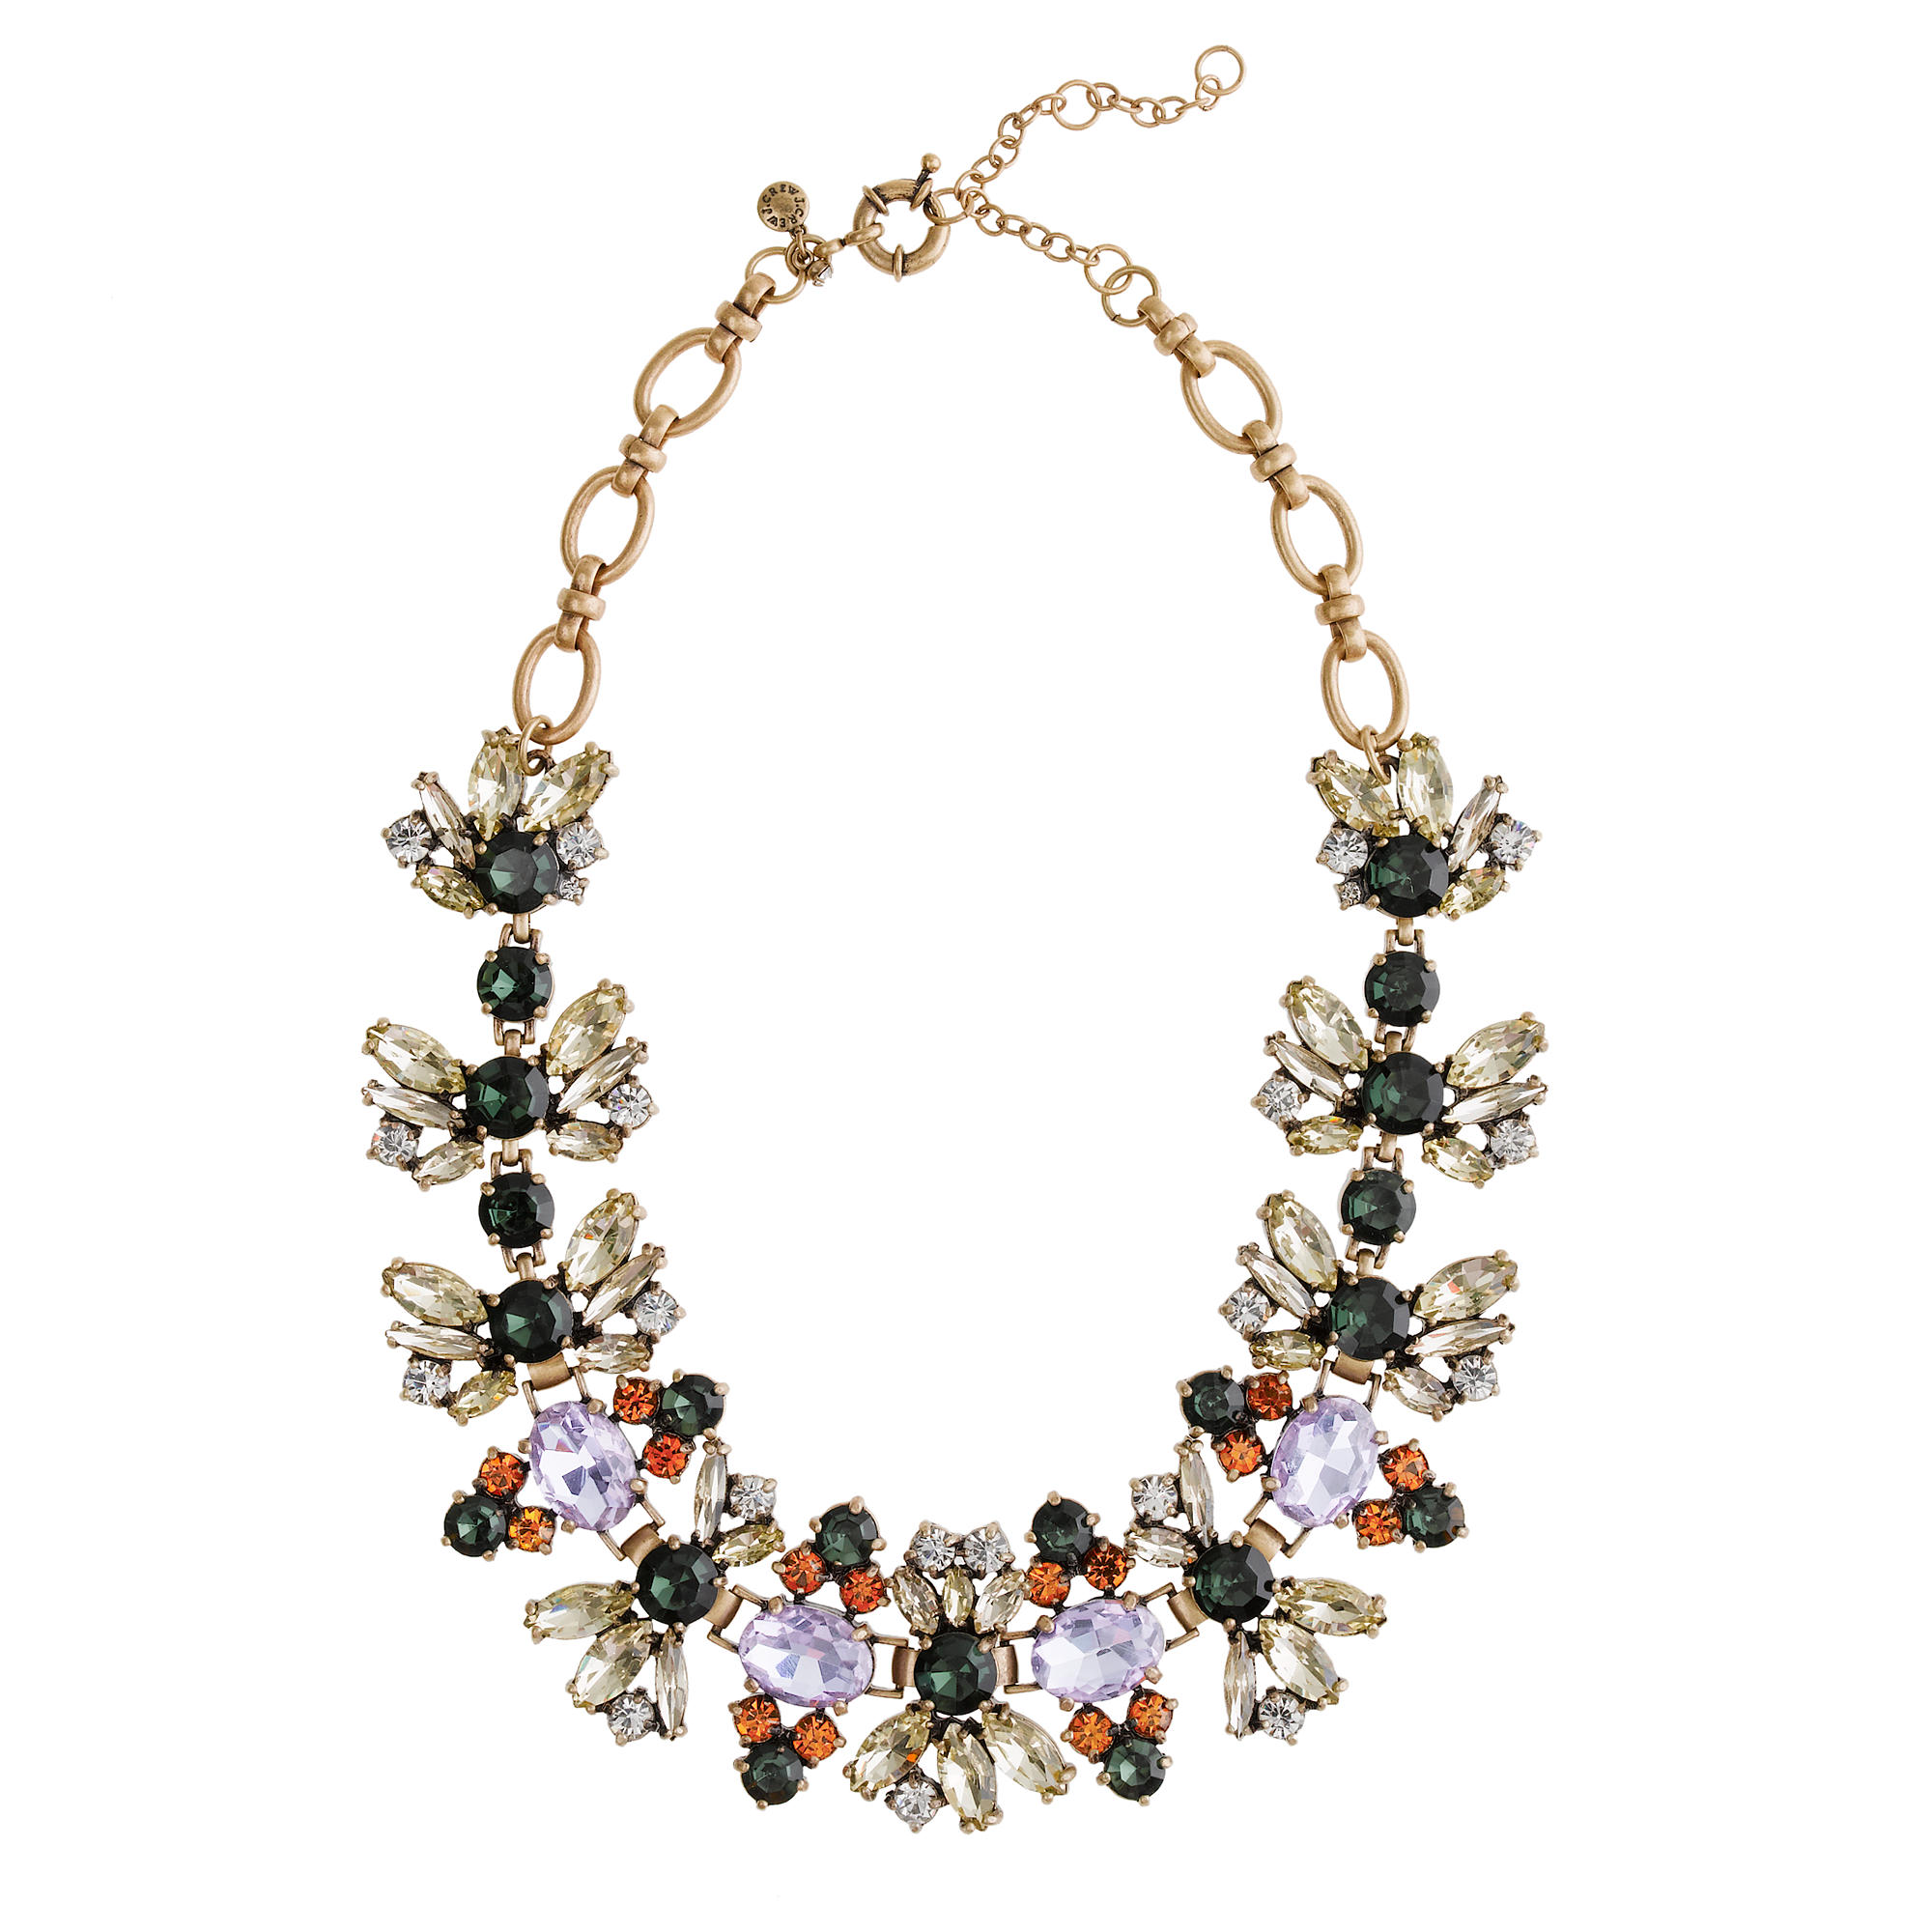 Fall floral crystal necklace j crew for J crew jewelry 2015